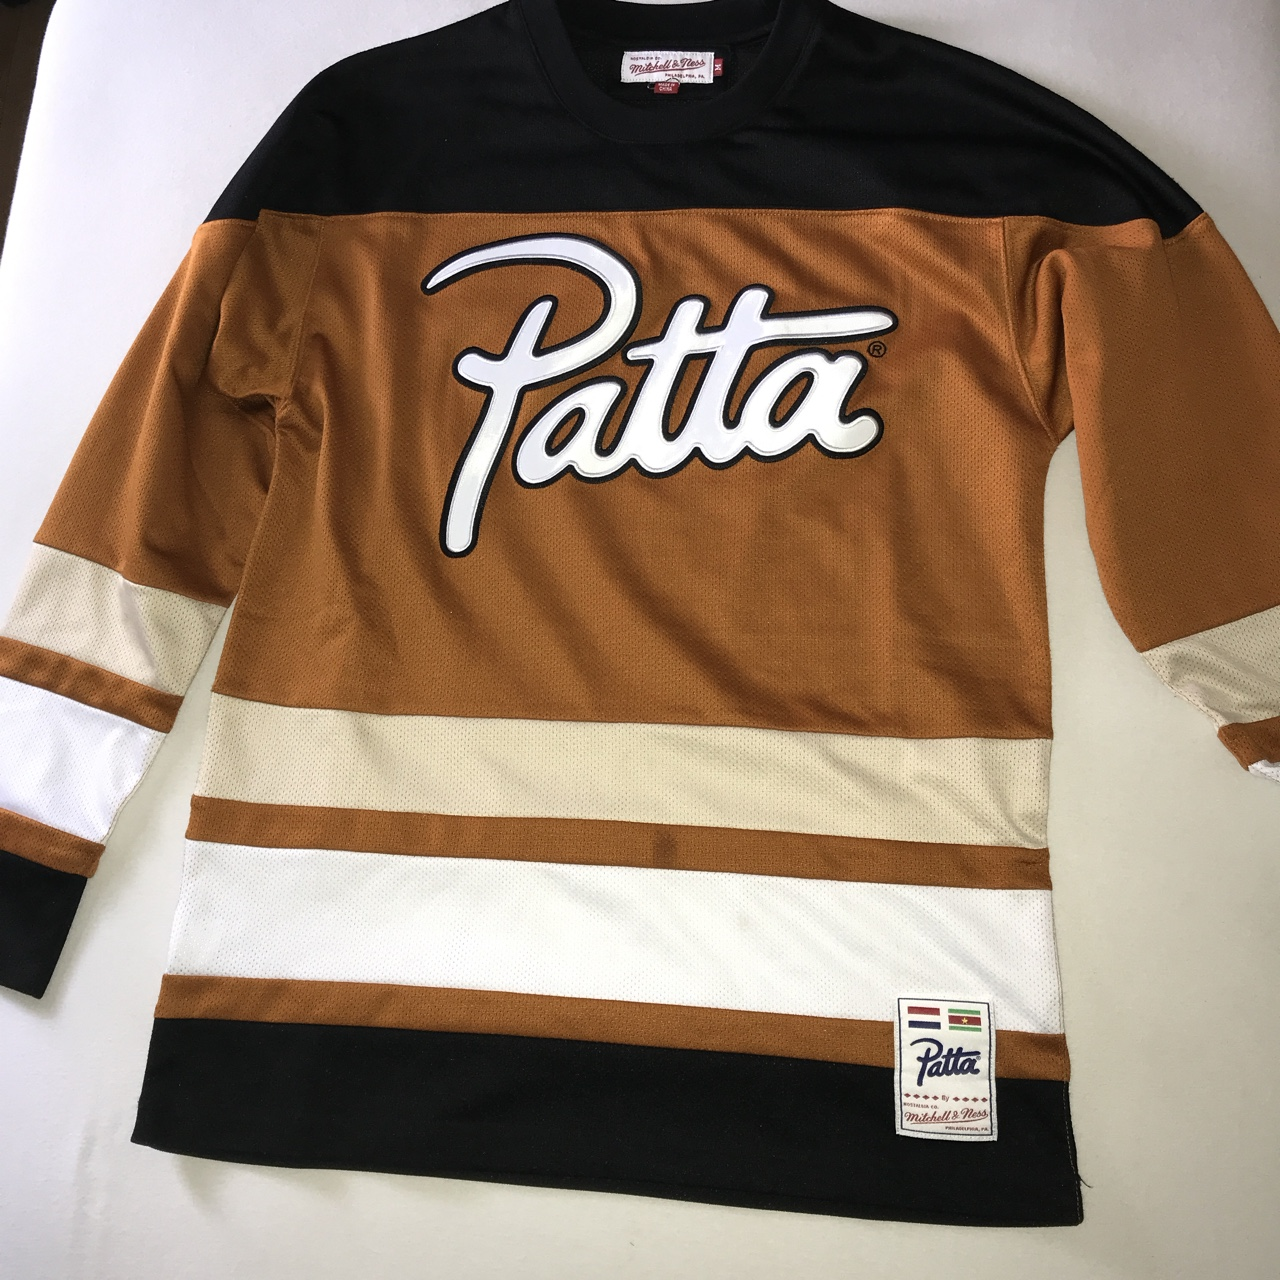 newest 8b043 4bd53 Patta , Mitchell & Ness Jersey Size M Used , but in... - Depop